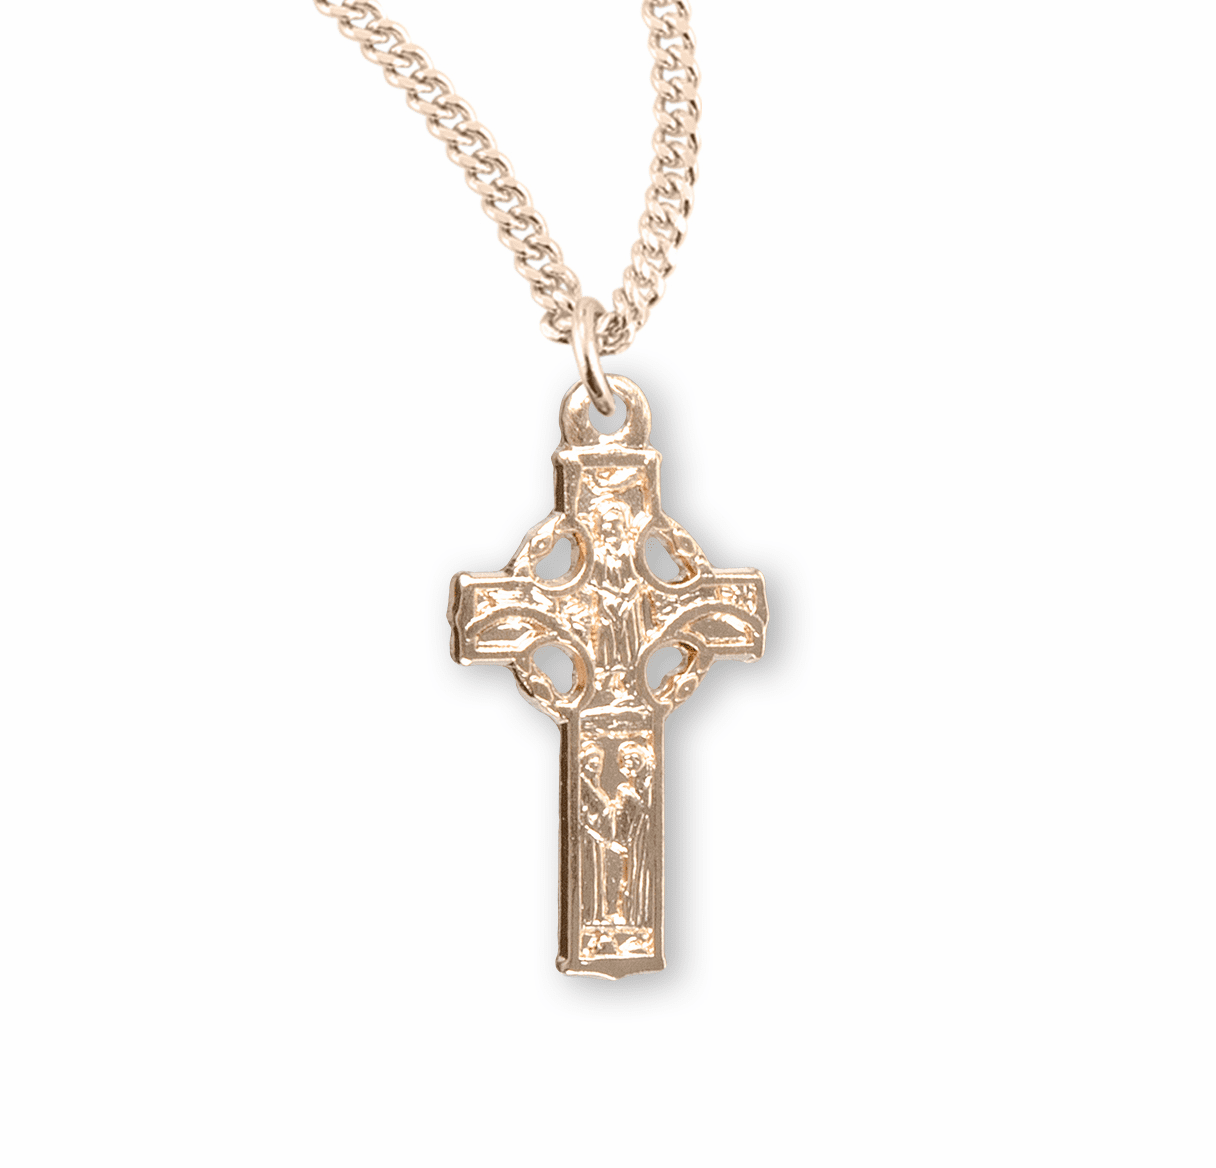 HMH Religious Gold Over Sterling Silver Irish Celtic Cross Necklace